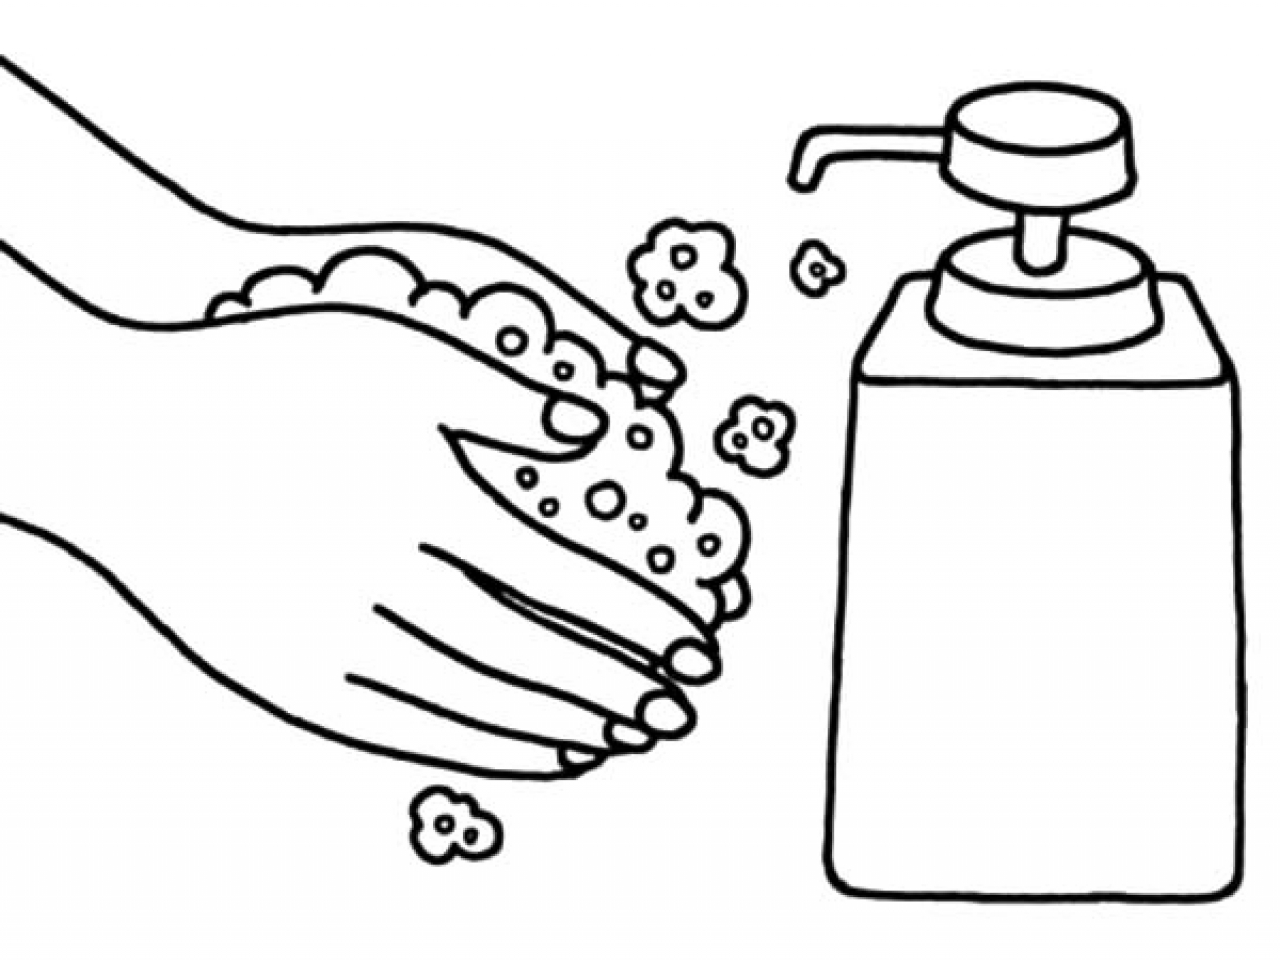 Washing Hands Drawing